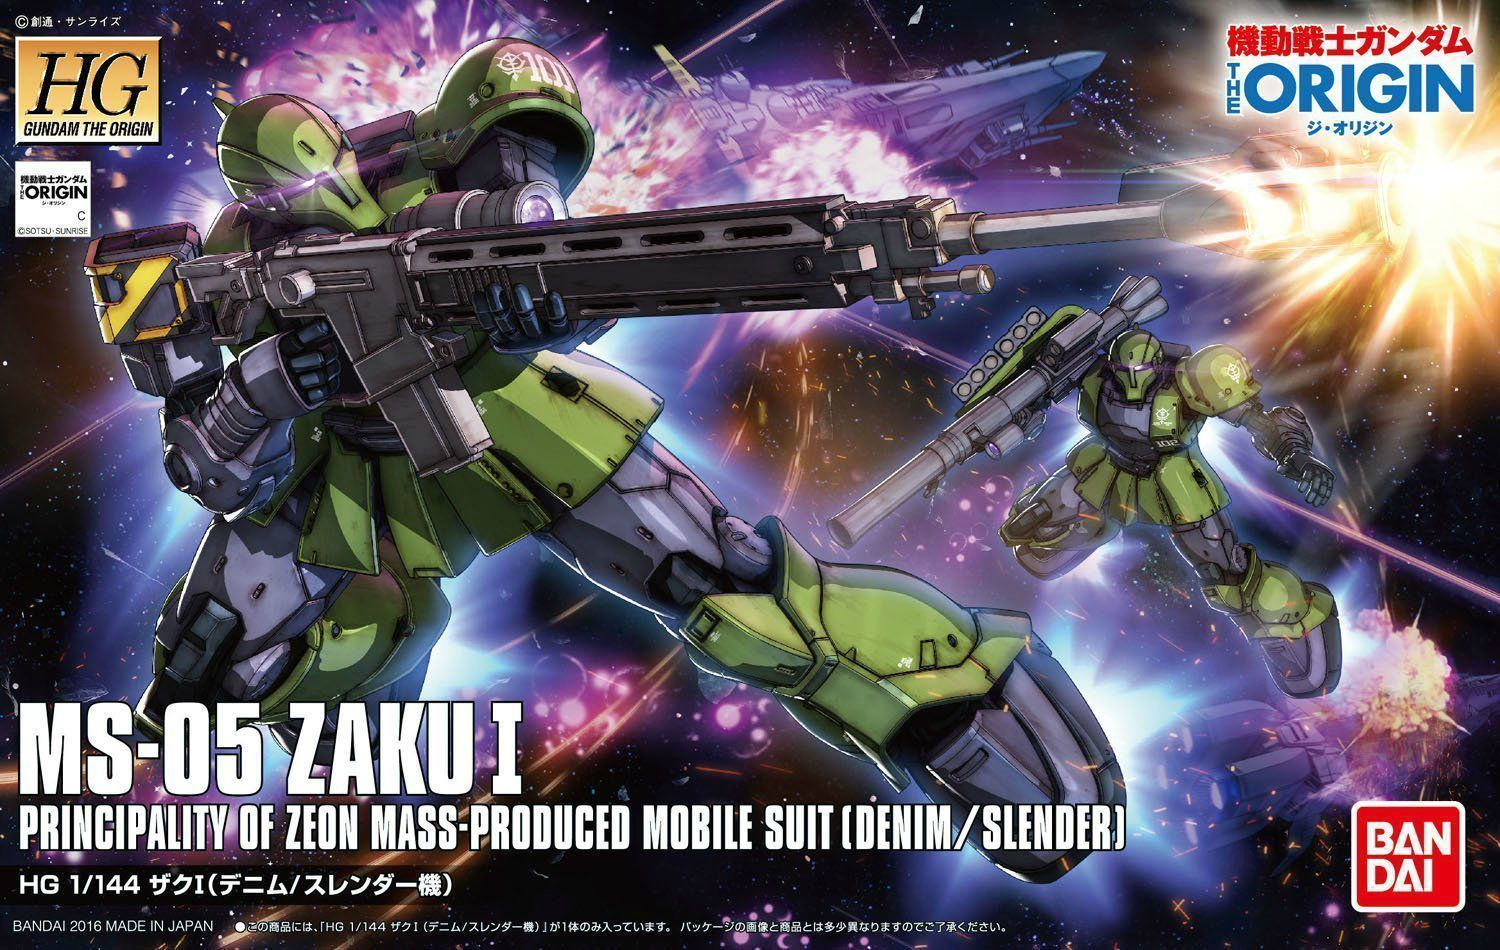 BANDAI HG 1/144 MS-05 ZAKU I DENIM / SLENDER Use Model Kit Gundam THE ORIGIN NEW_1